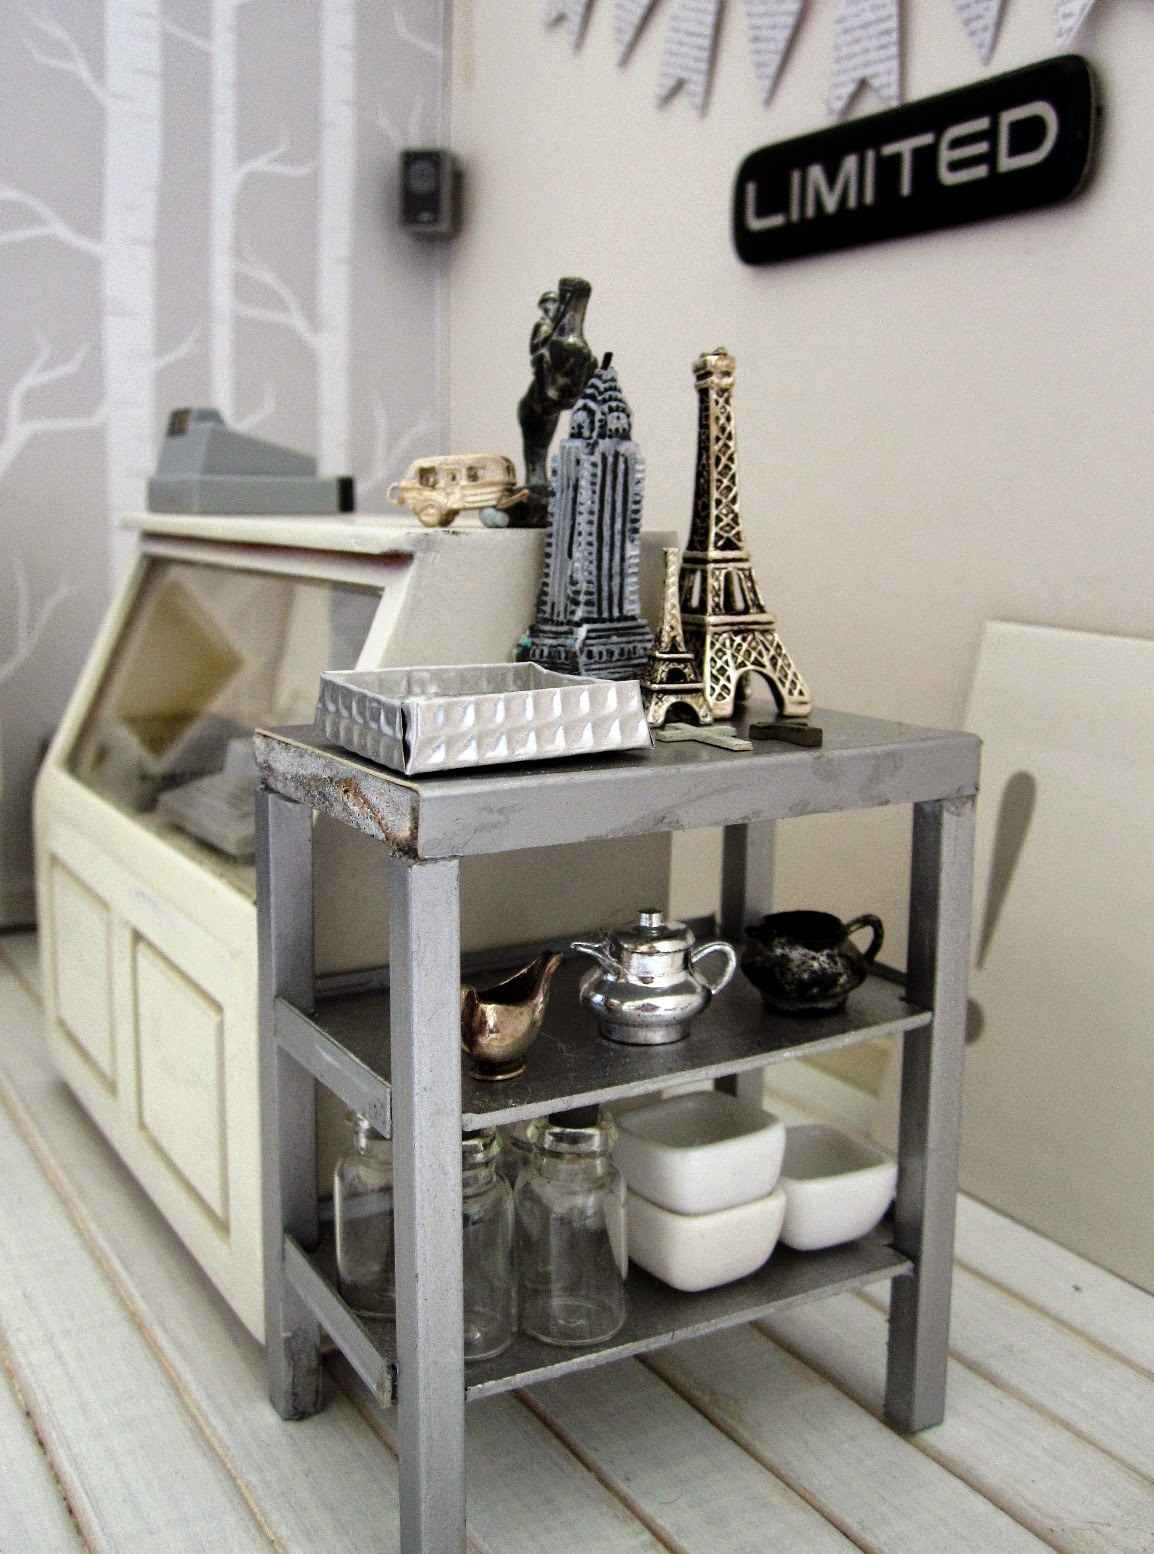 Counter area of a modern dolls' house miniature homeware shop in grey and white. On the counter is a cash register and two silver statues. To the right of the counter is a grey metal shelving unit displaying a selection of model buildings, a range of vintage silver jugs and a number of empty bottles and white bowls.